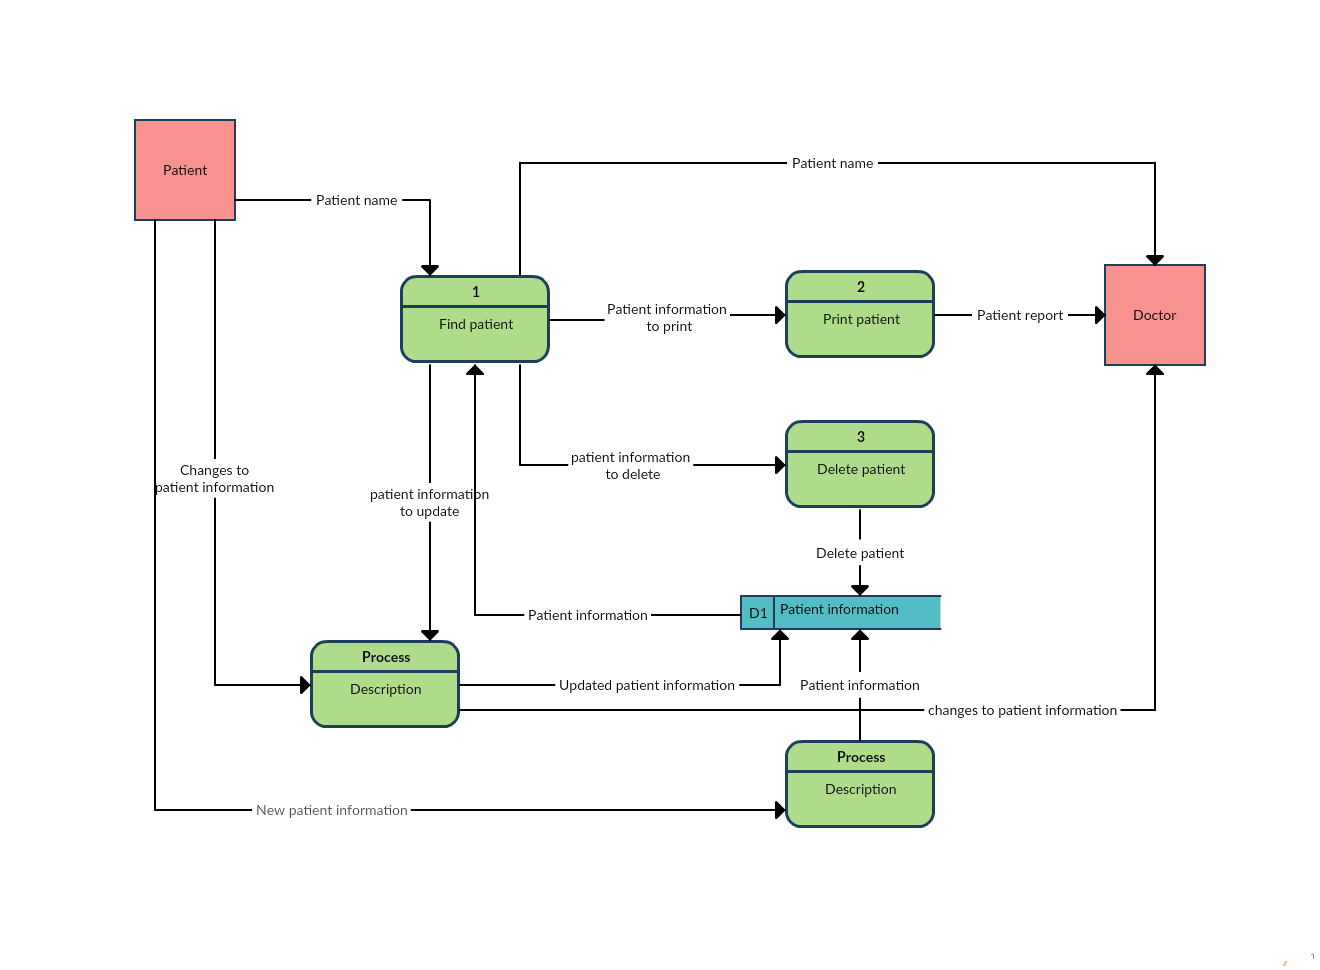 Data flow diagram templates to map data flows creately blog data flow diagram template of a patient information system ccuart Image collections